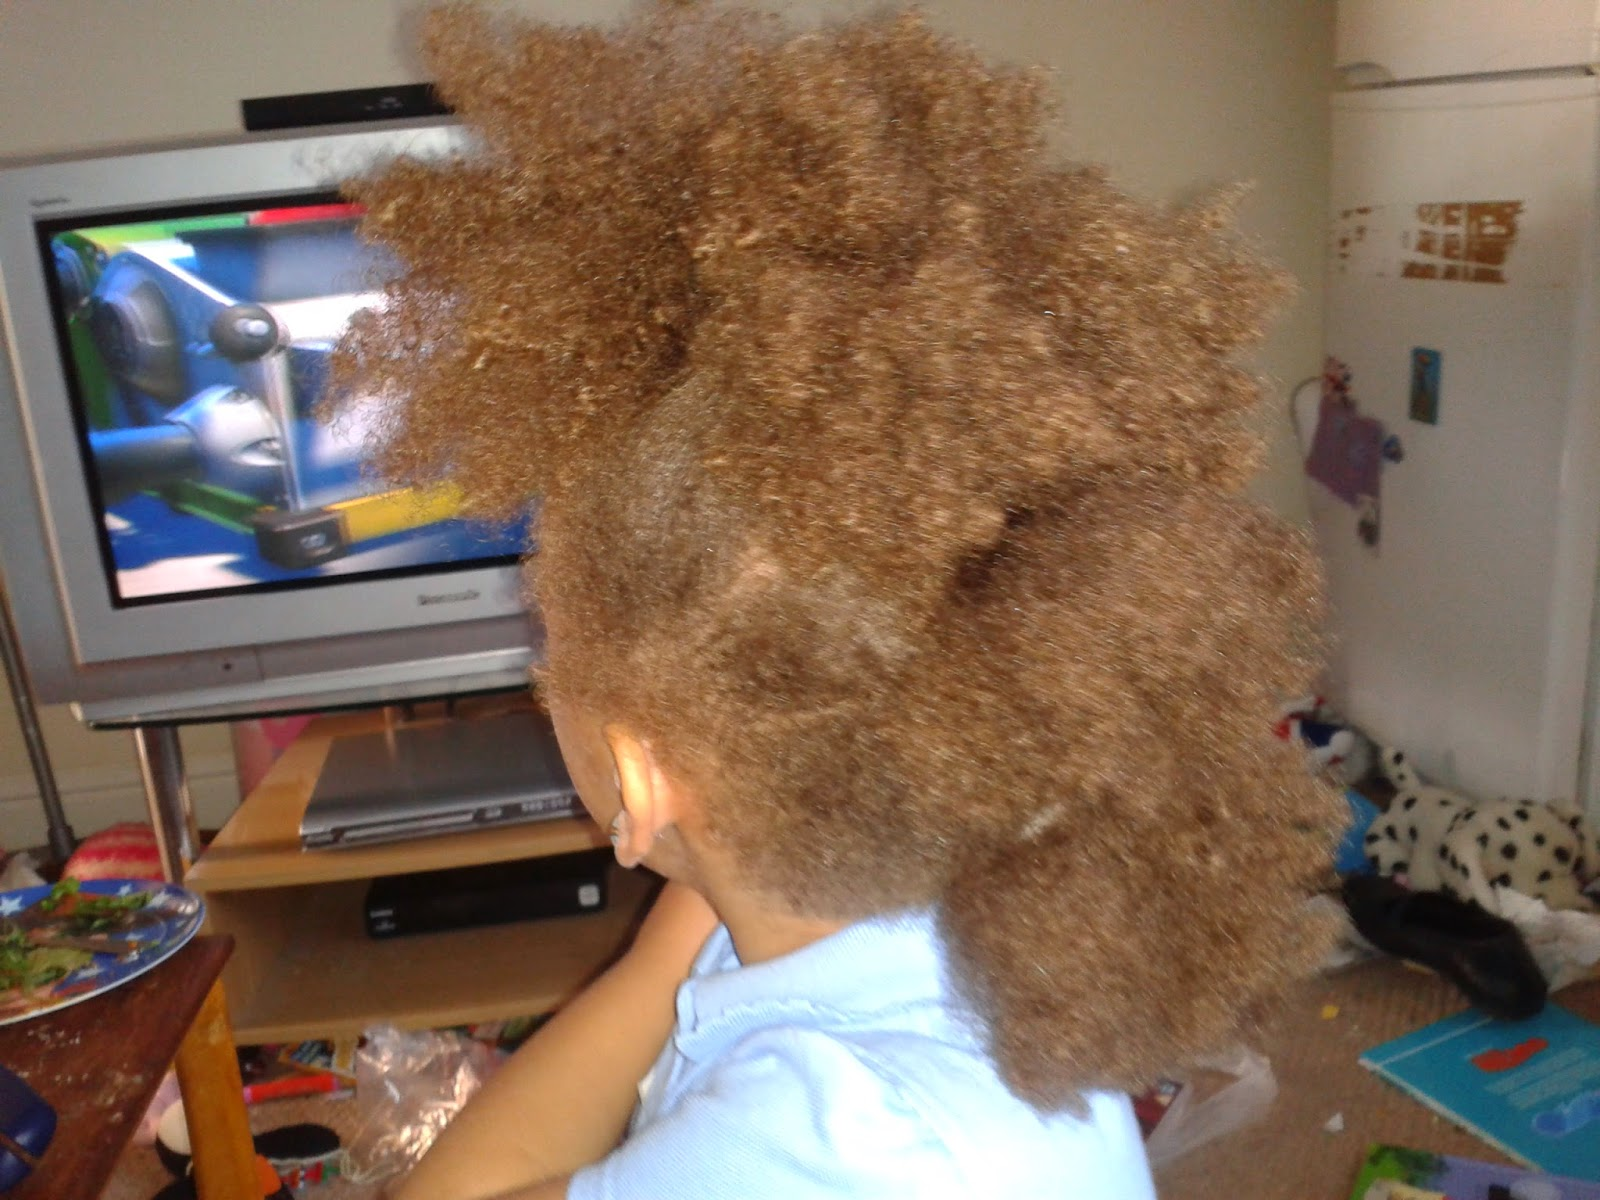 a close up of madam's hair showing it styled in a frohican